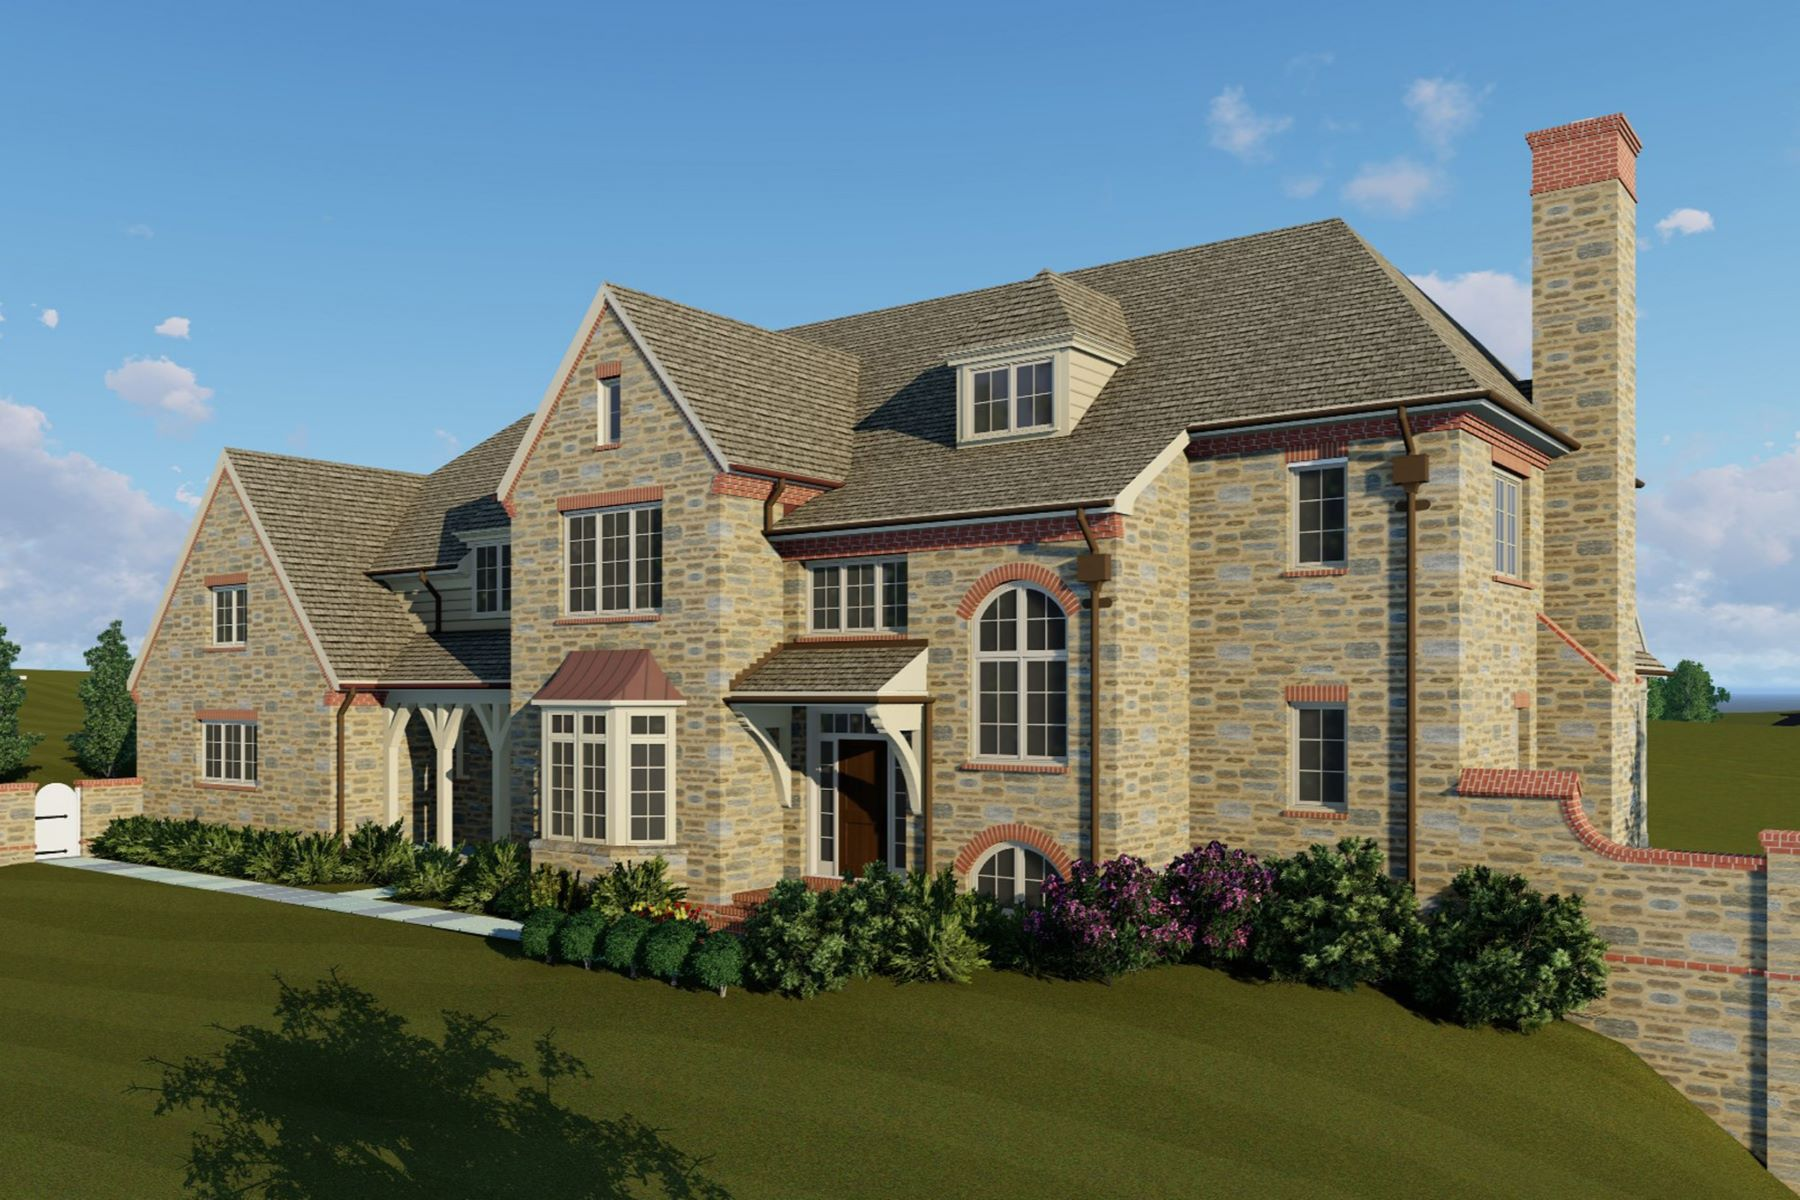 Casa Unifamiliar por un Venta en New Construction 443 BARCLAY RD, Bryn Mawr, Pennsylvania 19010 Estados Unidos